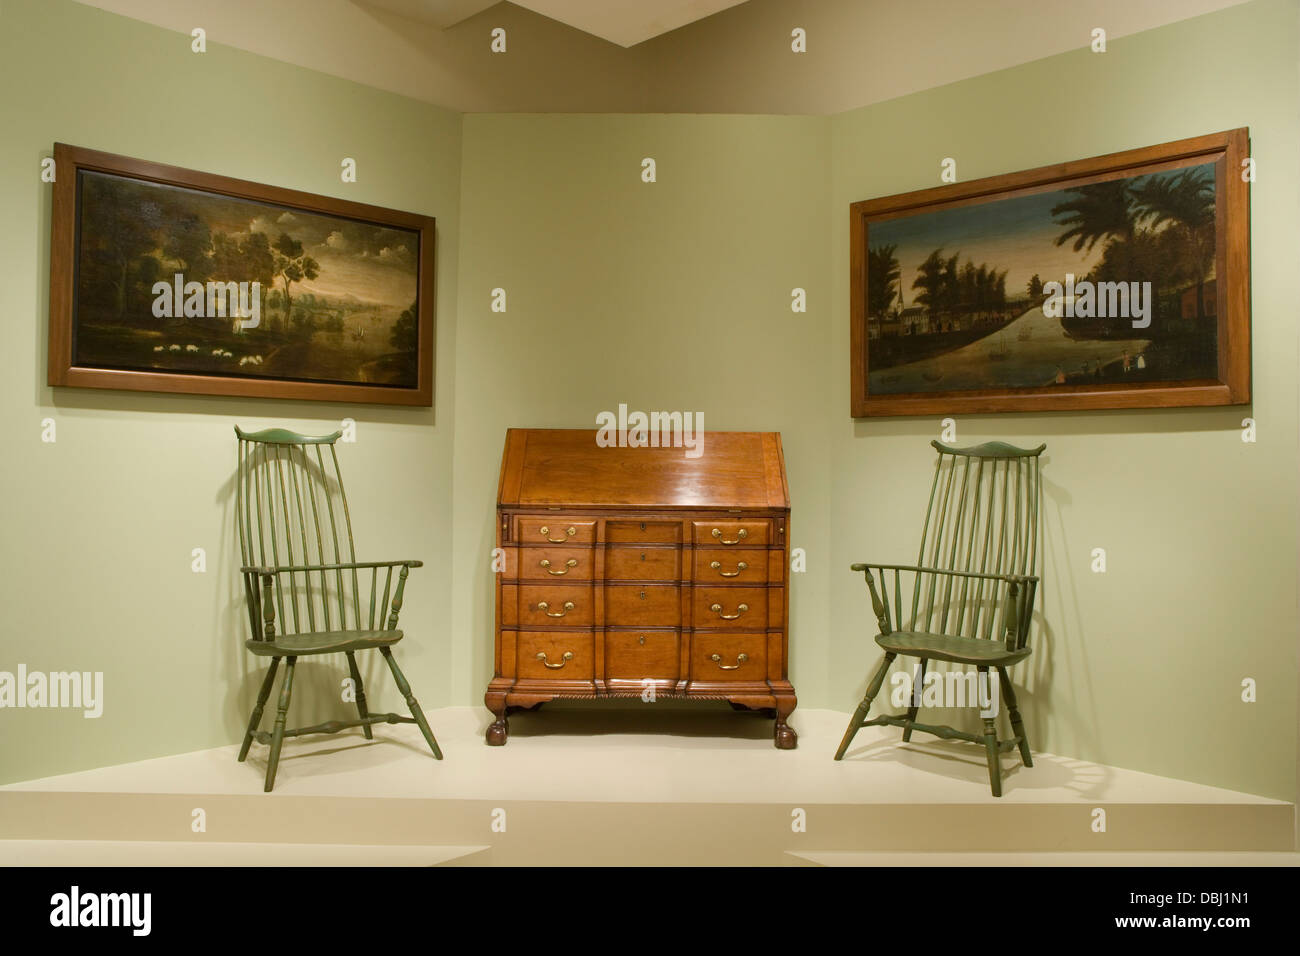 Worcester Worcester Art Museum Early American Furniture Slant